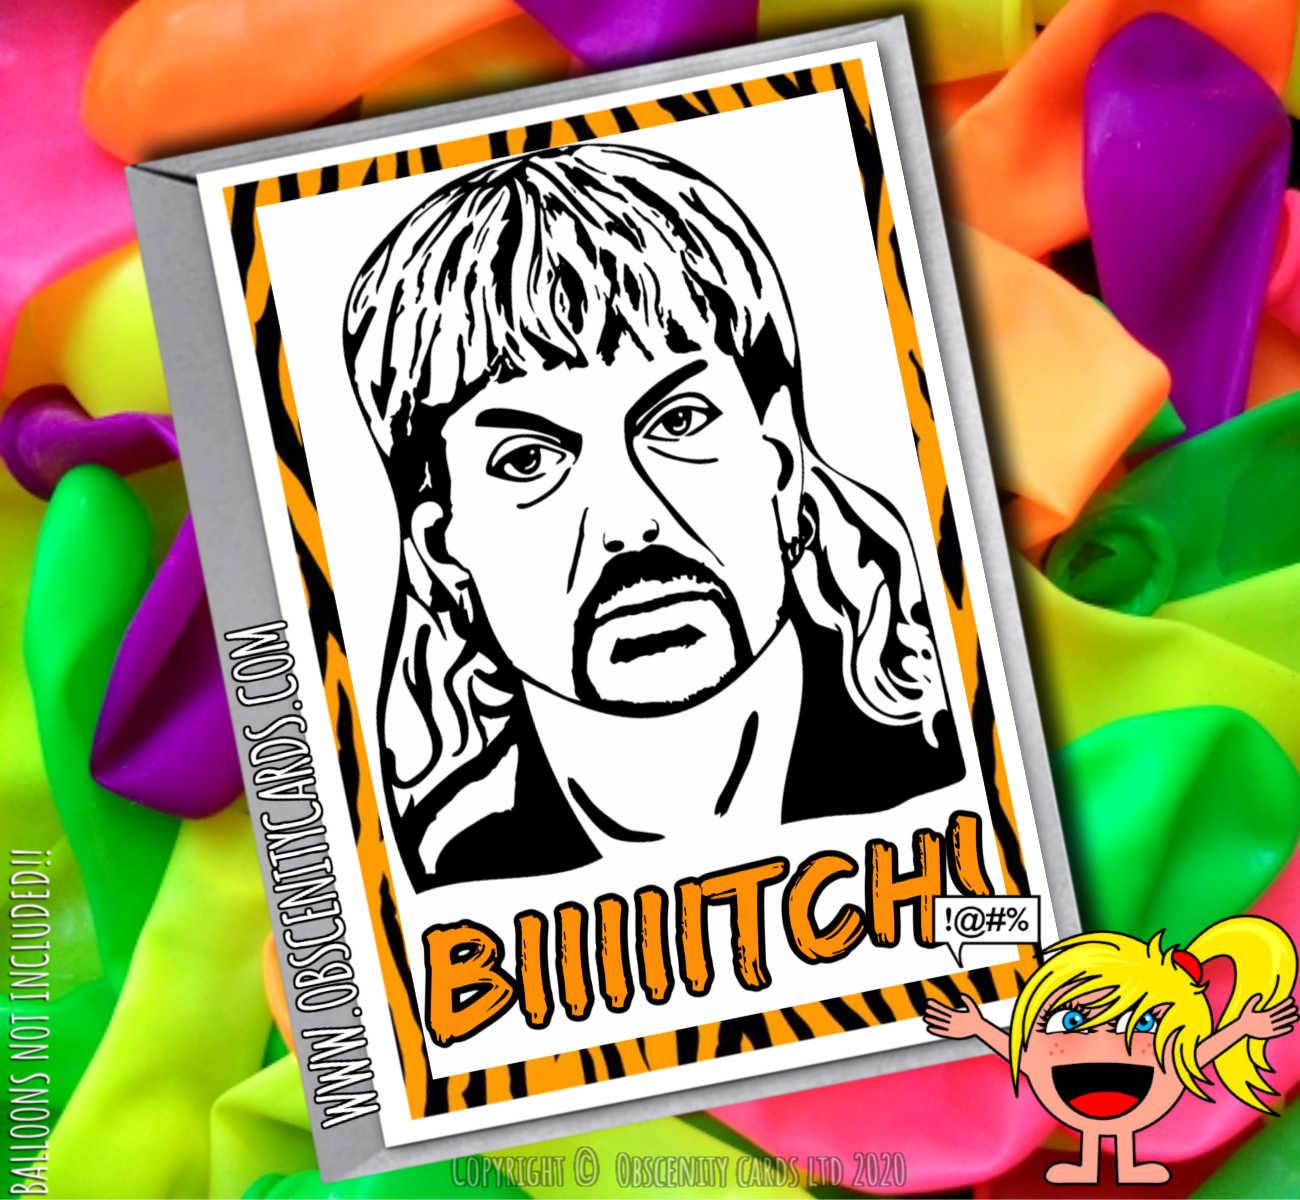 JOE EXOTIC BIIIIIITCH! TIGER KING FUNNY CARD